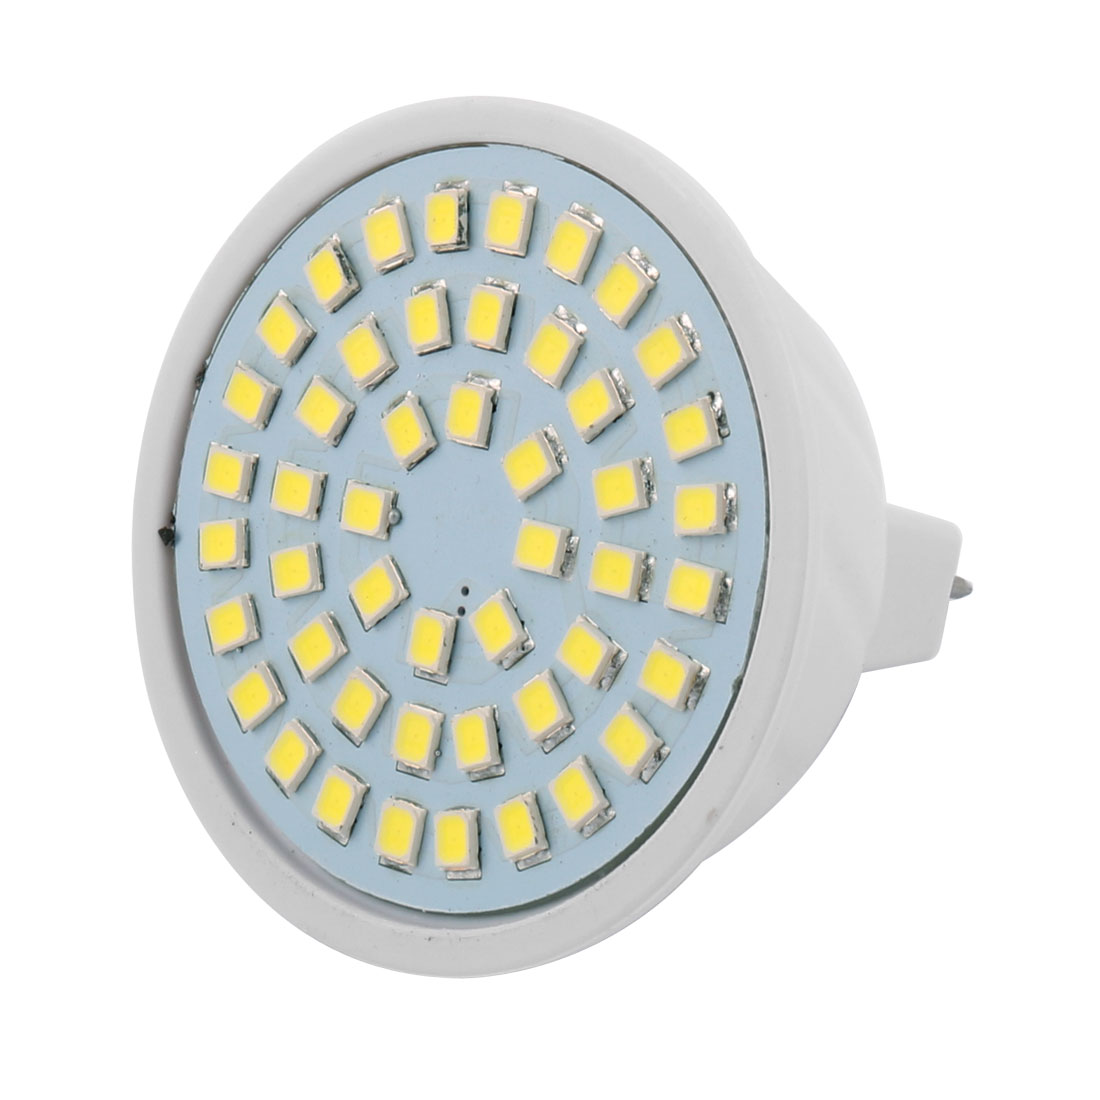 DC 12V 3W MR16 3528 SMD 48 LEDs LED Bulb Light Spotlight Lamp Lighting White